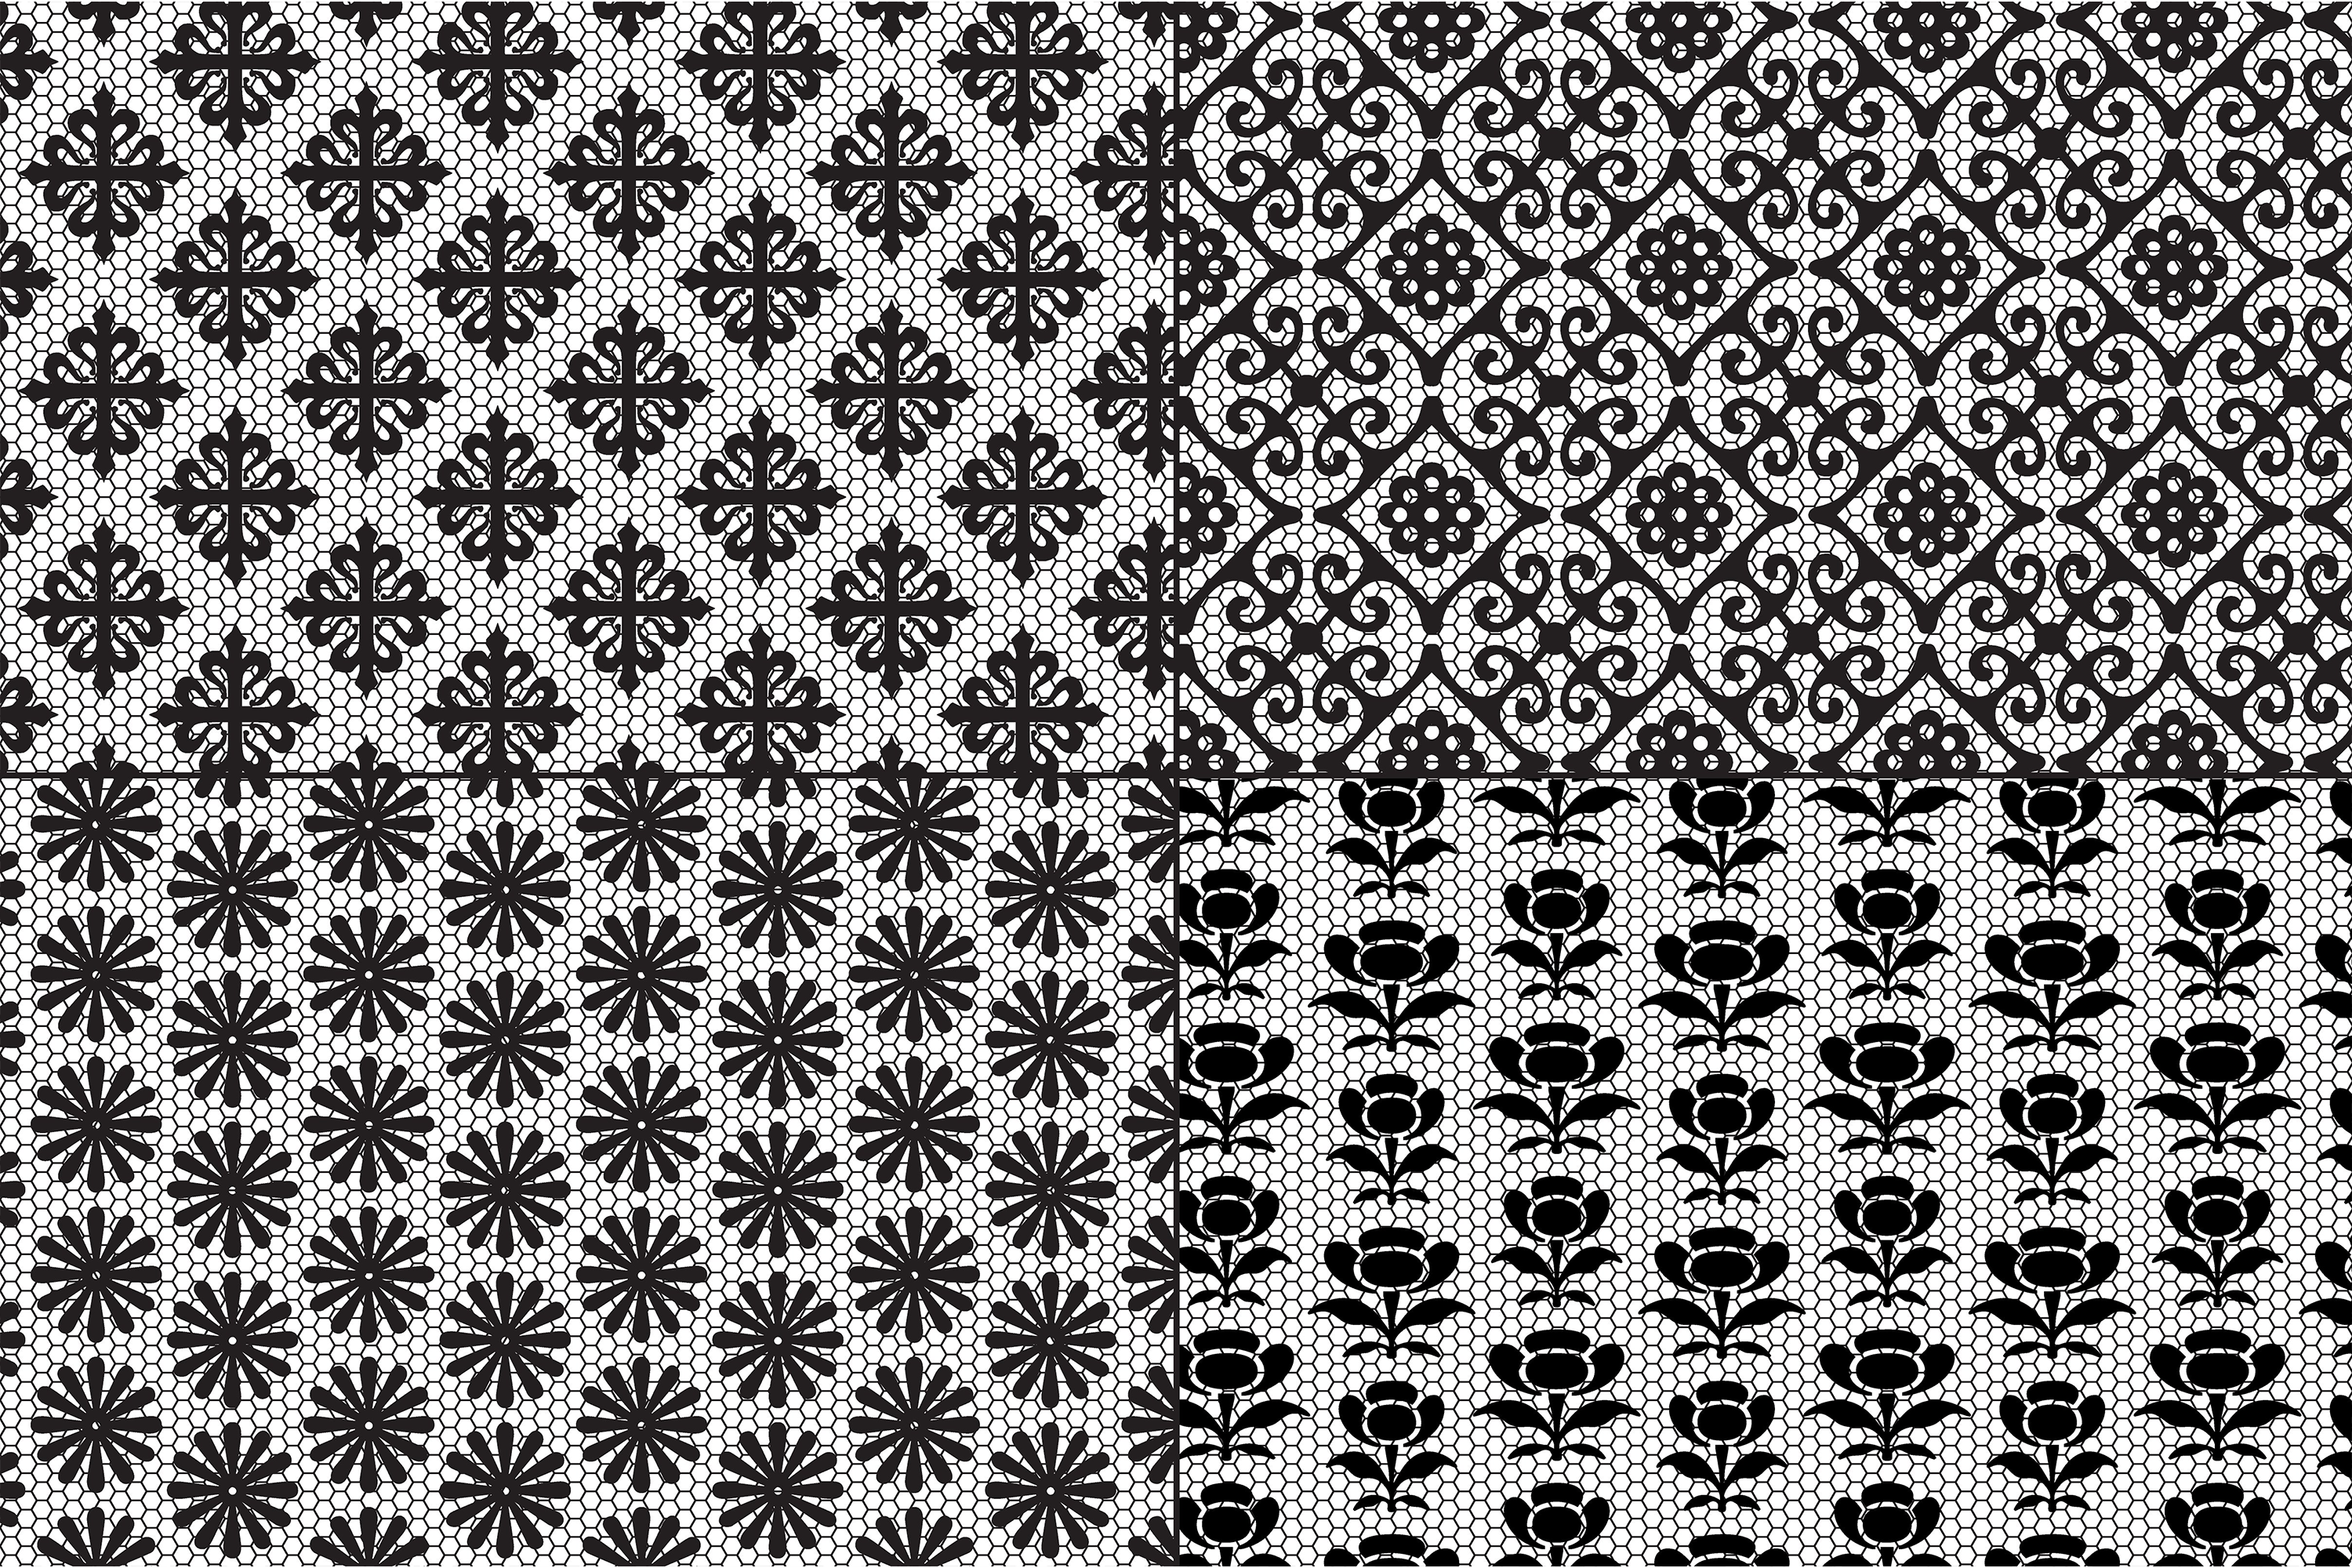 Black Lace Patterns example image 4